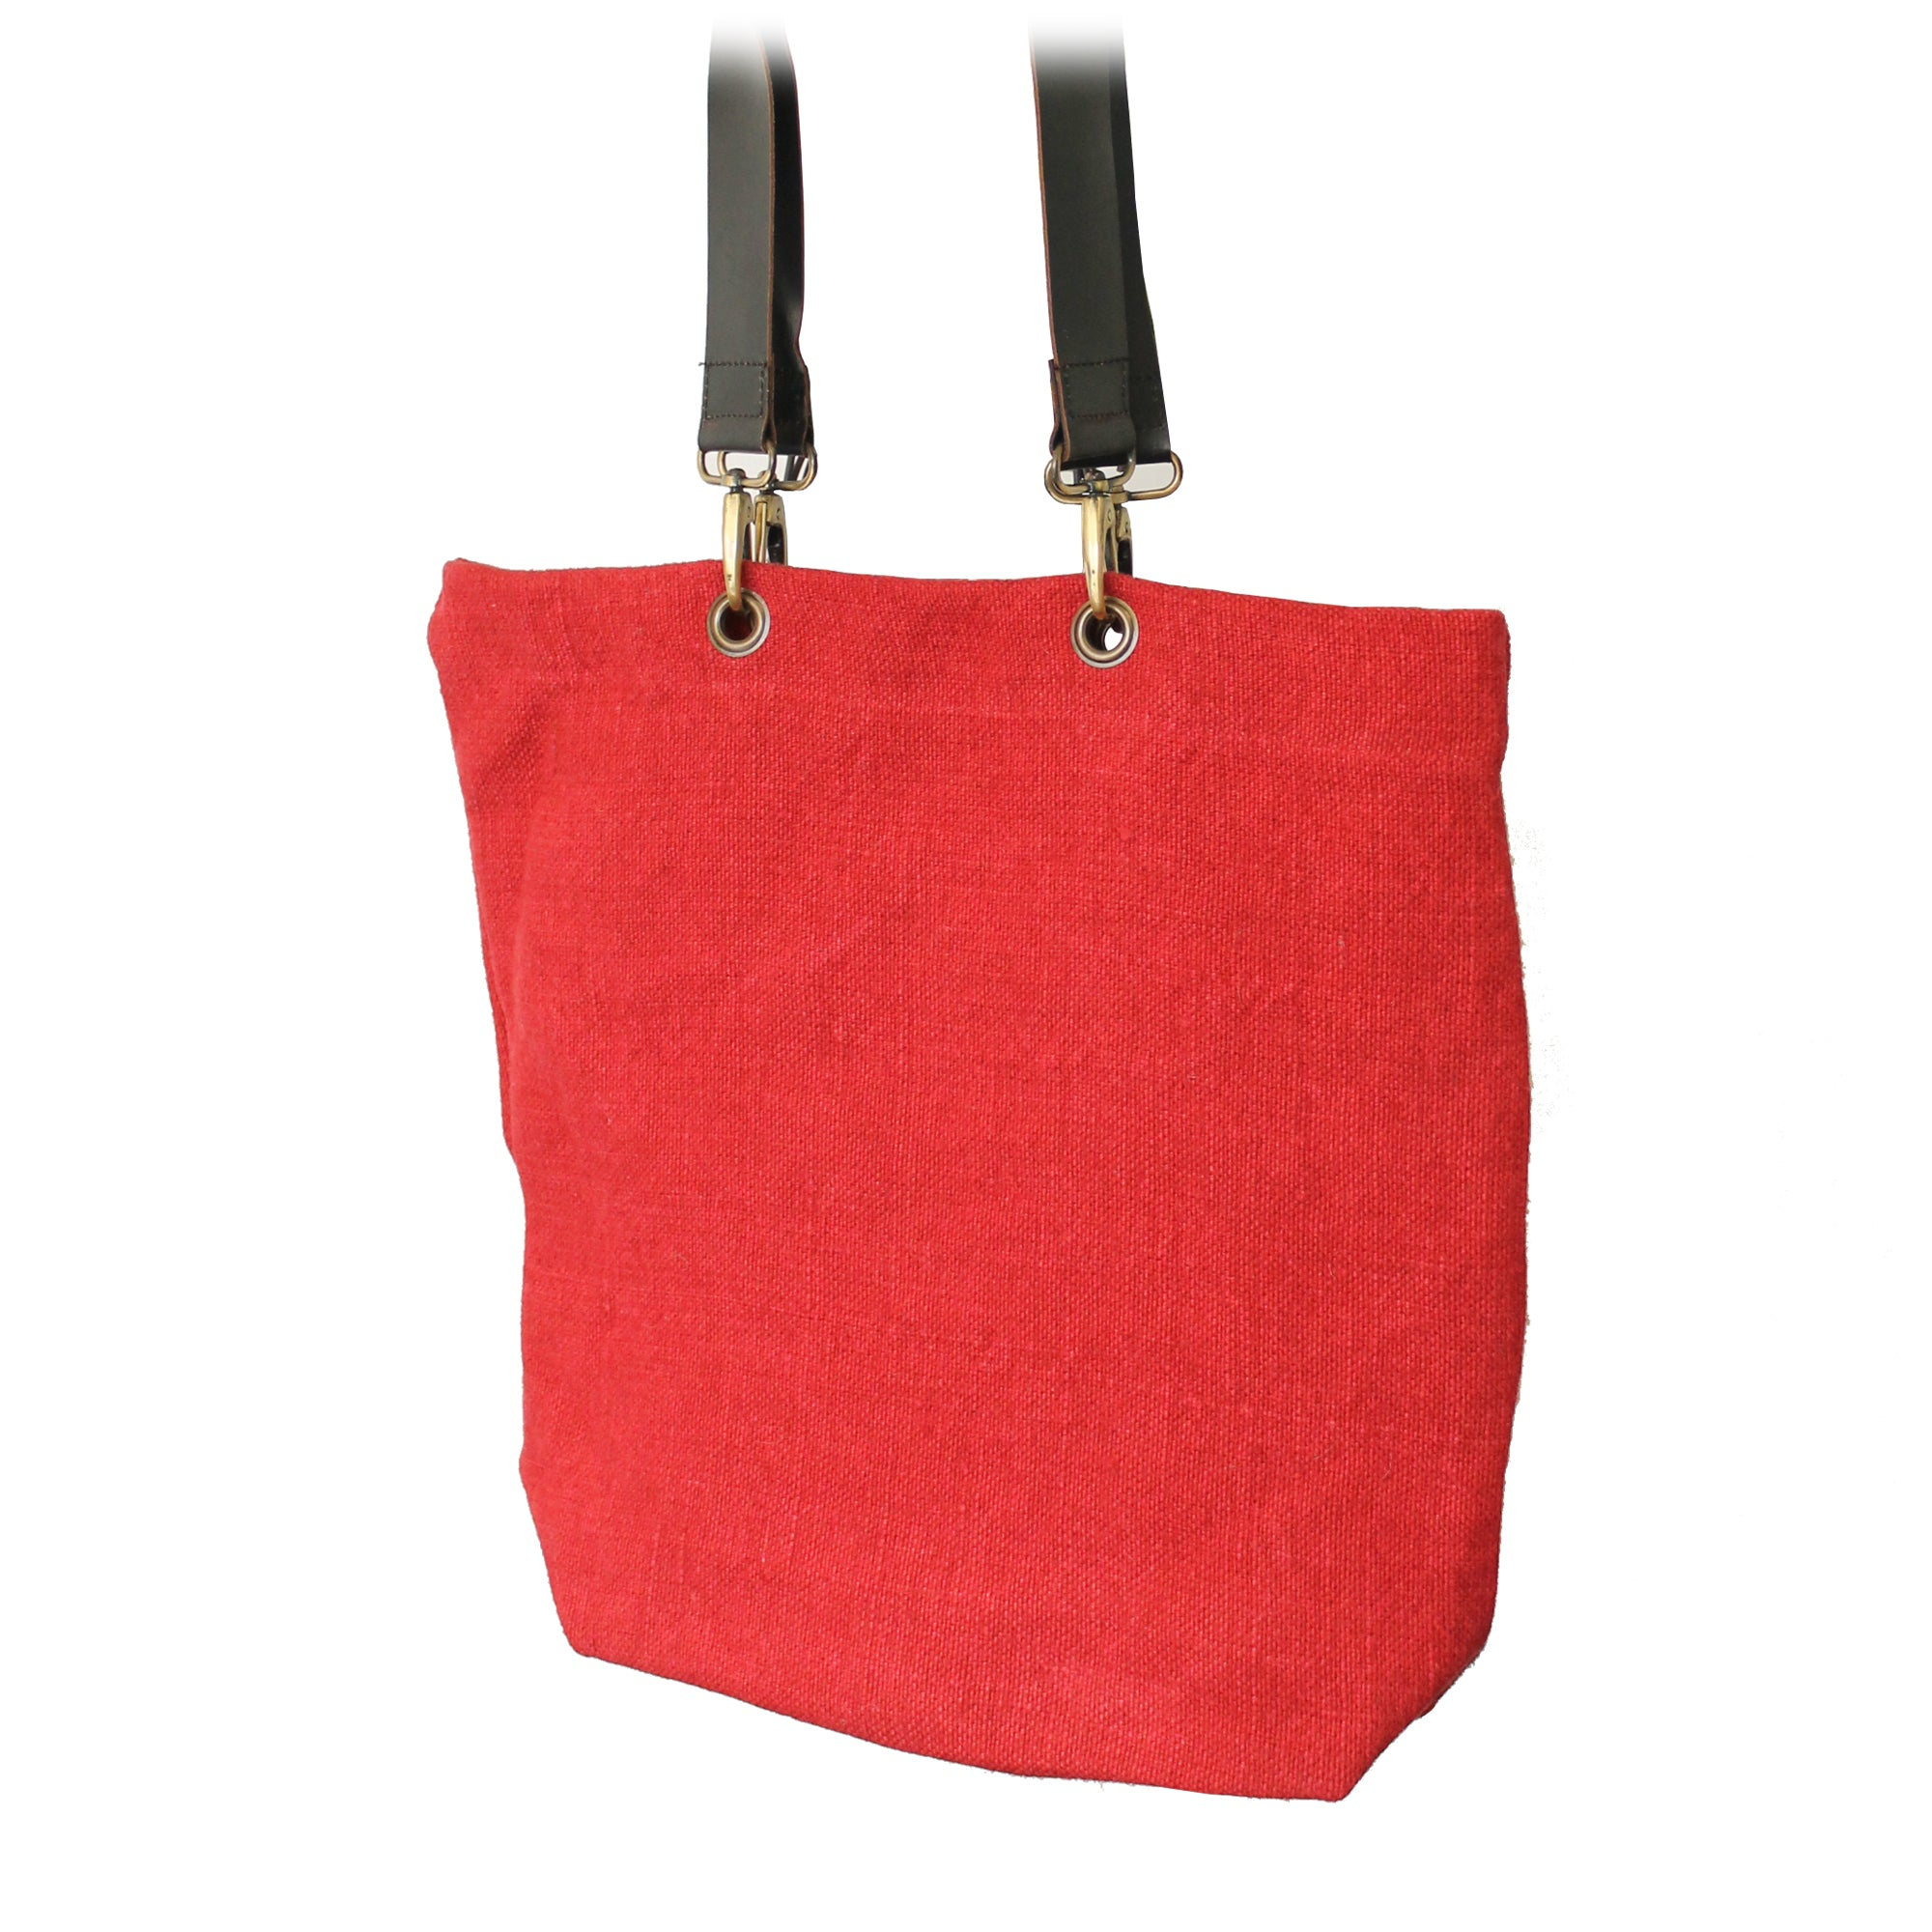 'Ruby' Soft Jute Bag - Red